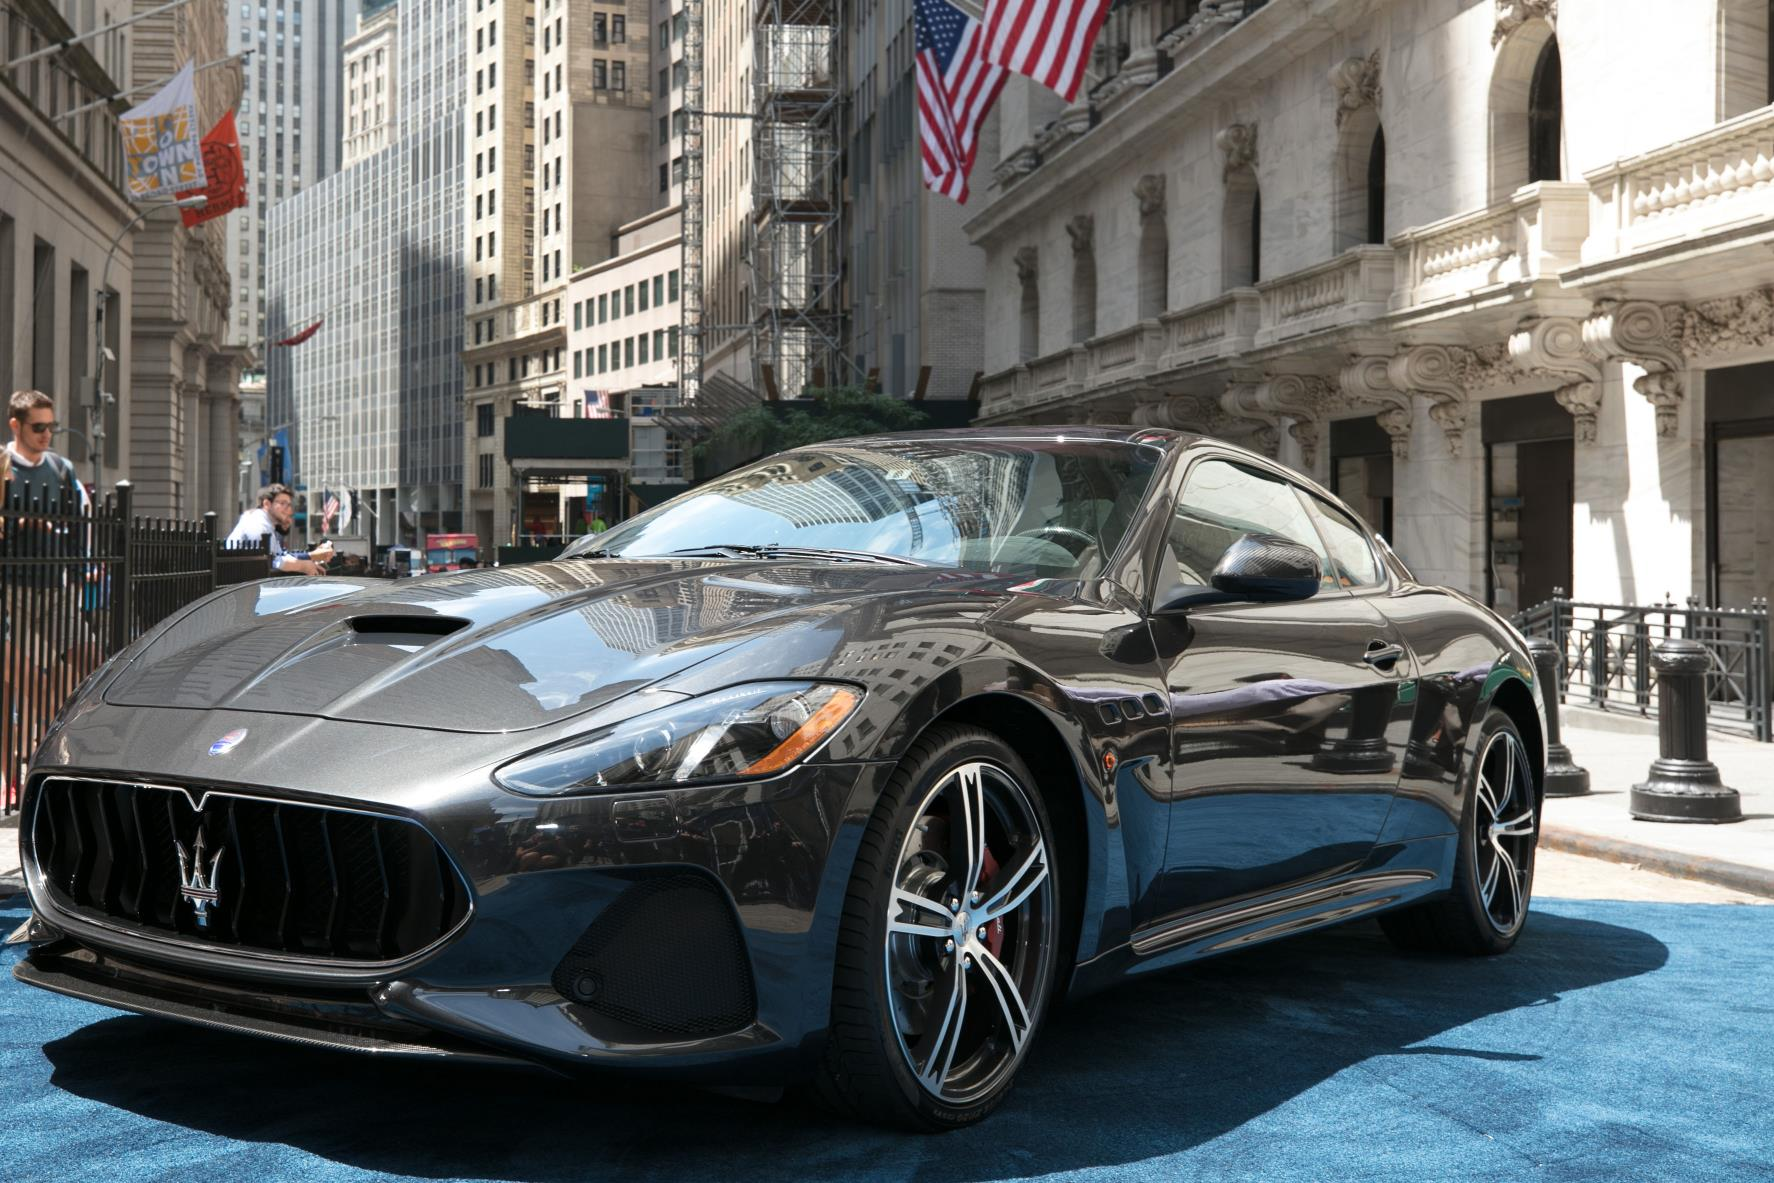 Elegant Maserati GranTurismo MC MY18 At New York Stock Exchange_2017_2